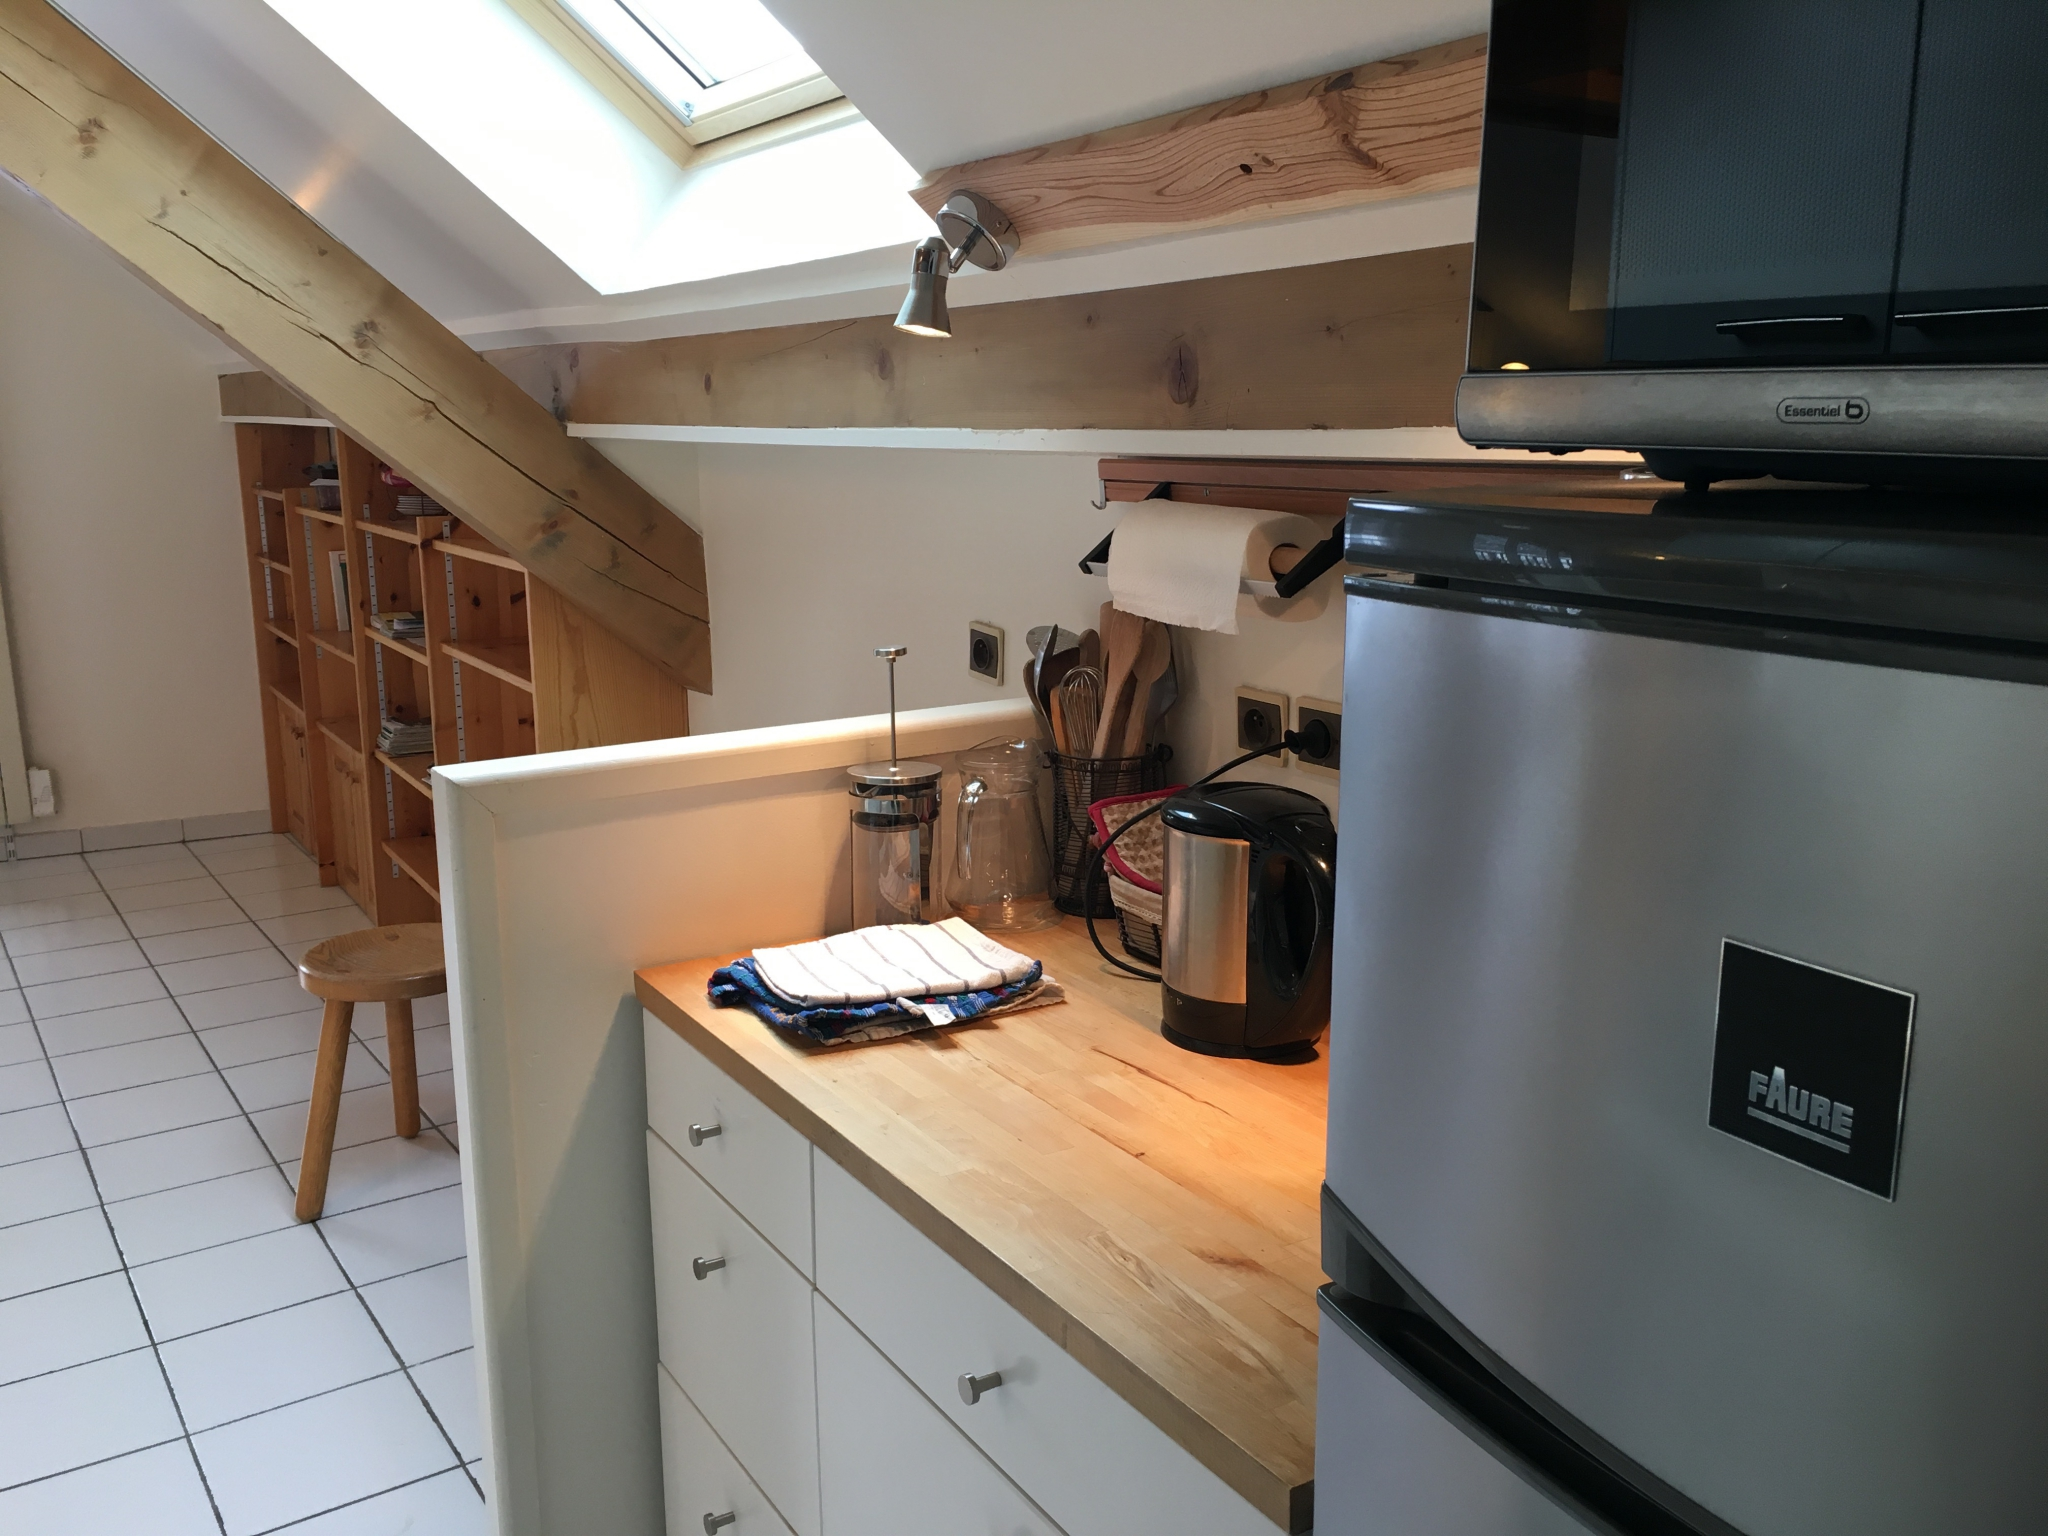 Kitchen area with fridge freezer